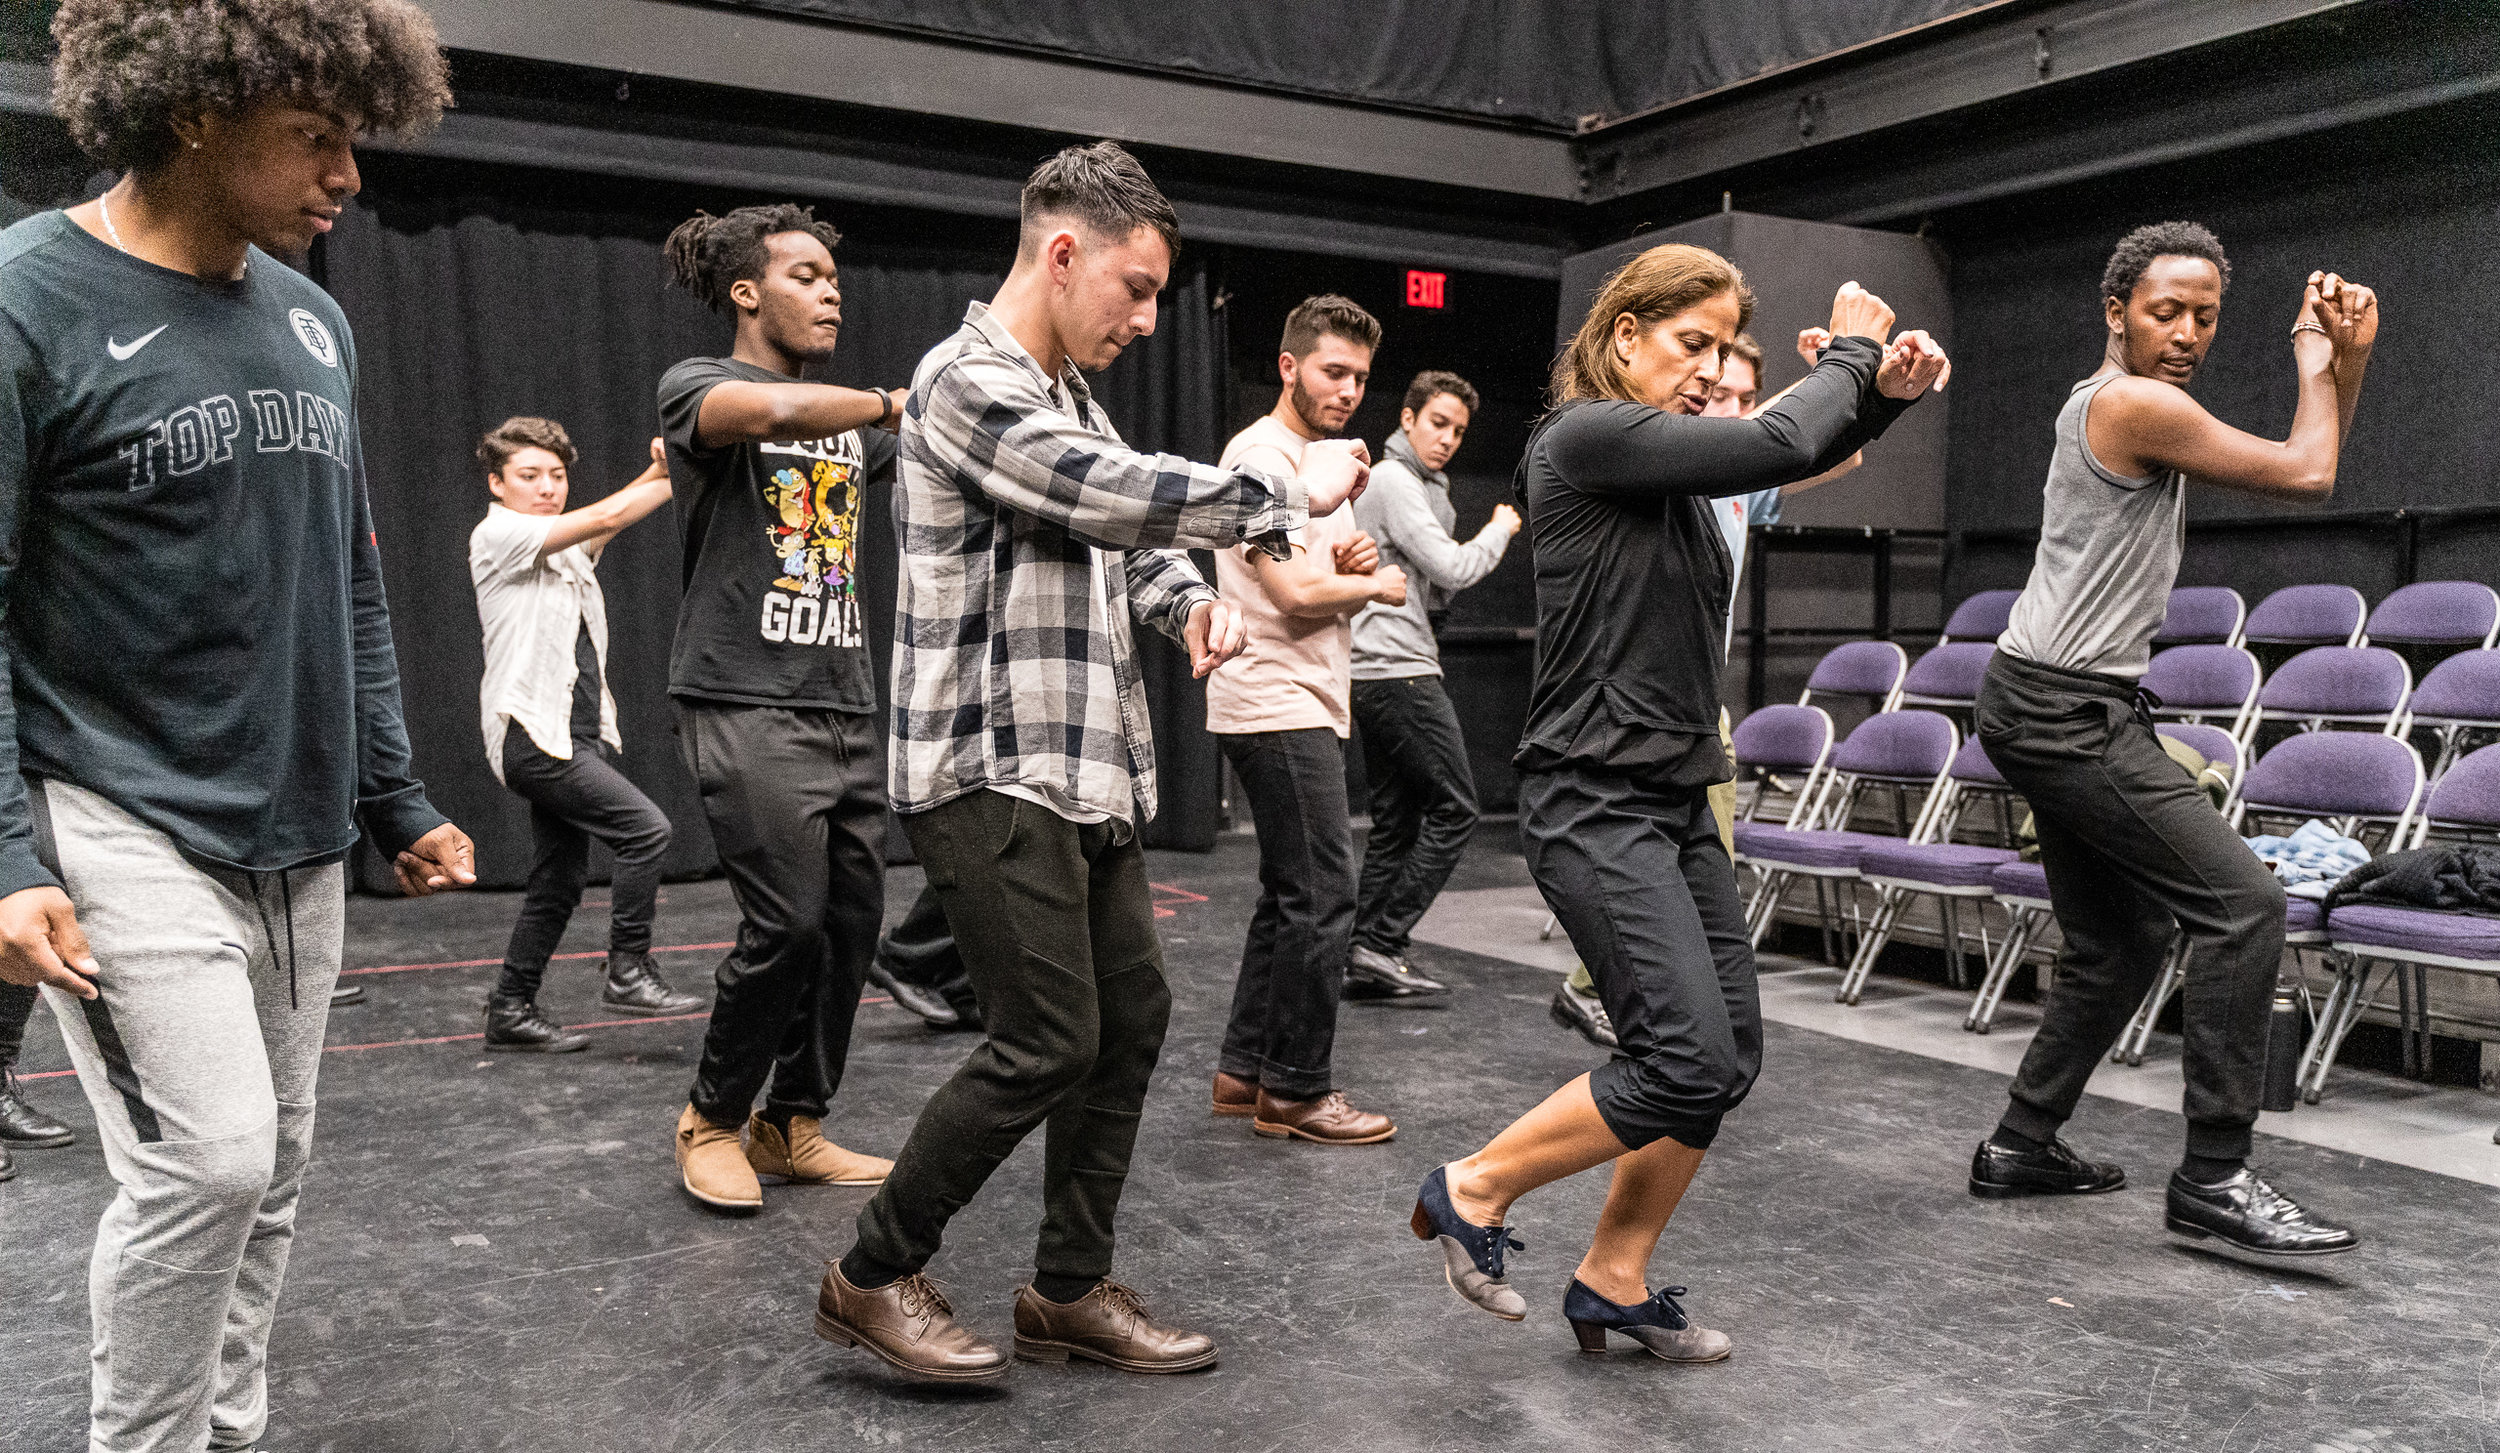 Flamenco Macbeth co-choreographer and SMC Theatre & Dance faculty member Cihtli Ocampo (center-right, in all black) teaches flamenco choreography to the cast of SMC's upcoming production of Flamenco Macbeth at the SMC Studio Stage, the space where Flamenco Macbeth will premiere in a month, on Thursday, March 21, 2019. Flamenco Macbeth is an adaptation of Shakespeare's Macbeth by SMC Theatre Arts department chair Perviz Sawoski. The play will be performed at the SMC Studio Stage, a 100-seat thrust stage, from April 26 through May 5, 2019. (Glenn Zucman/The Corsair)